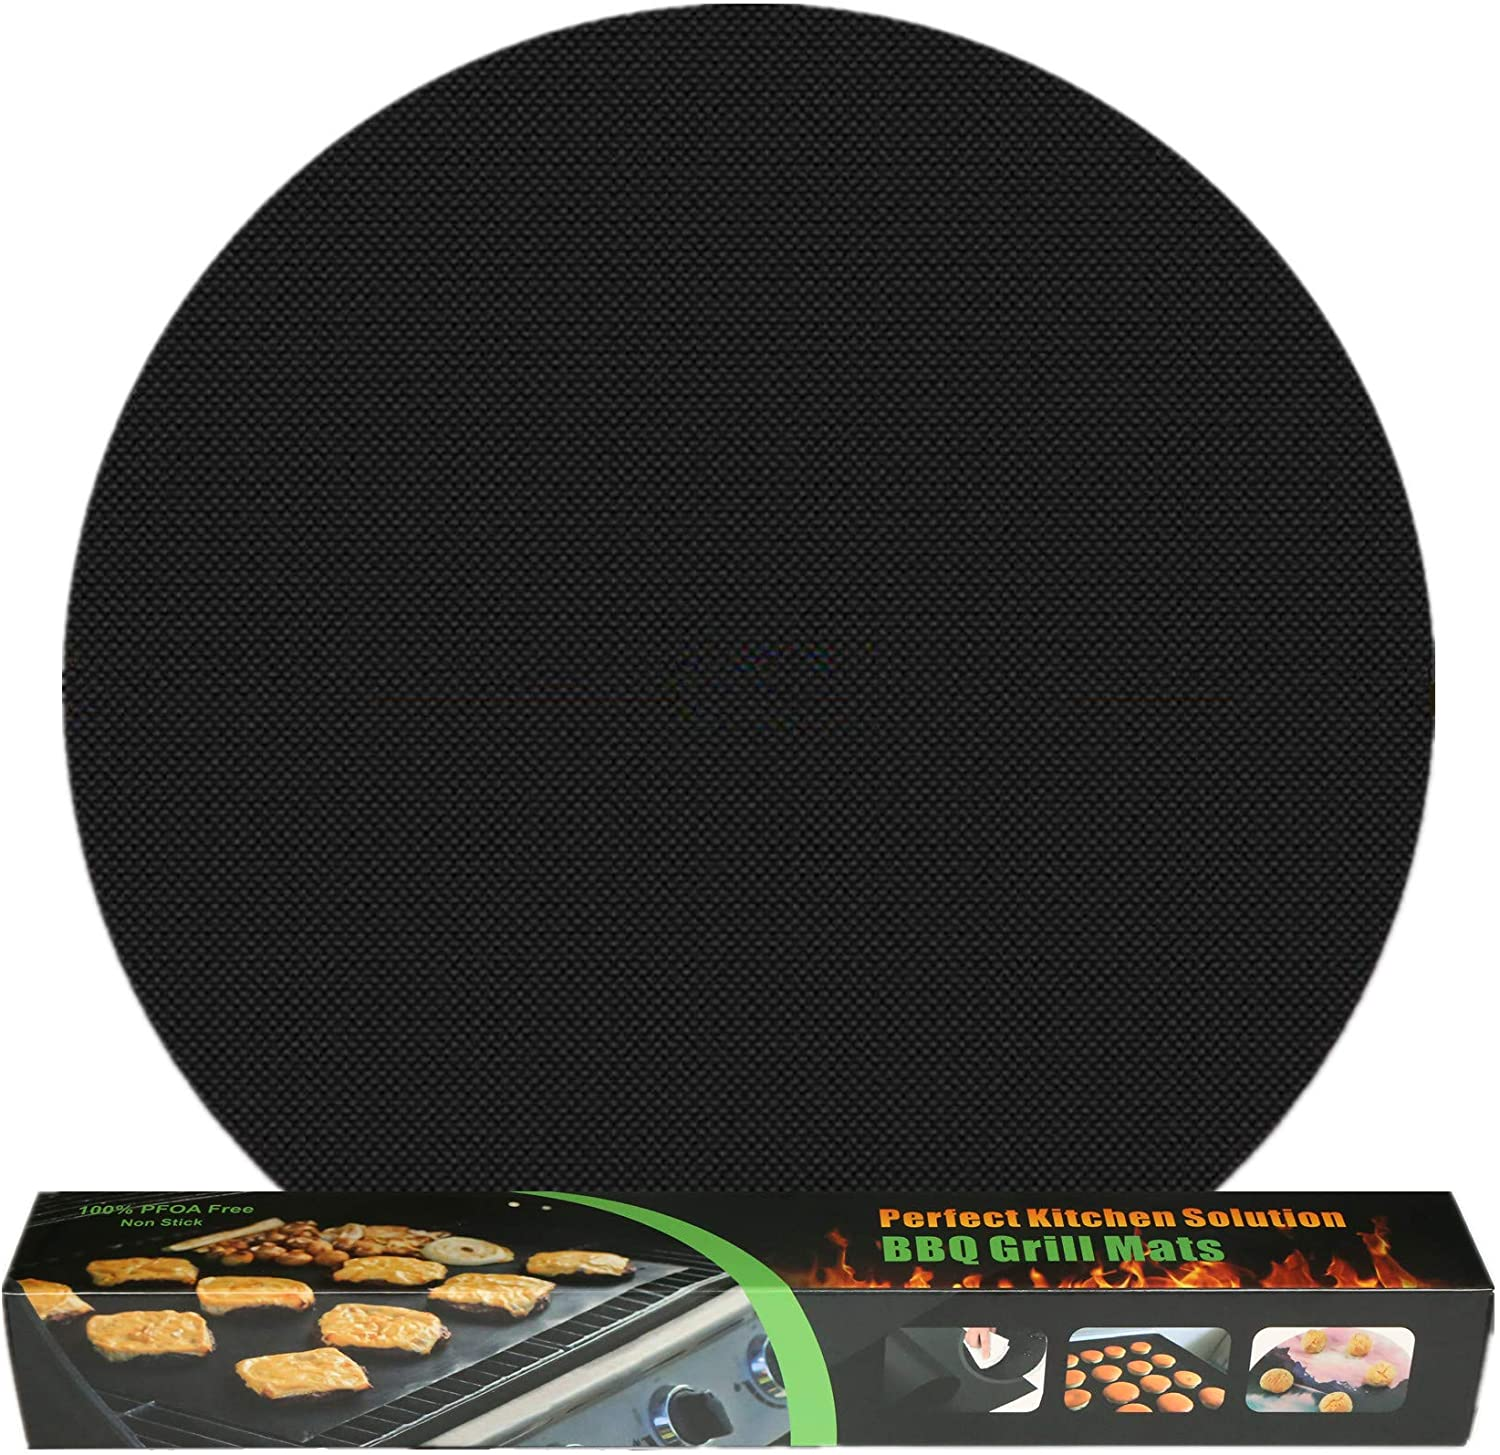 VEIK Grill Mat, 0.4mm Thick, Nonstick BBQ Grilling Mats Set, Large - 15 inch, Pack of 5